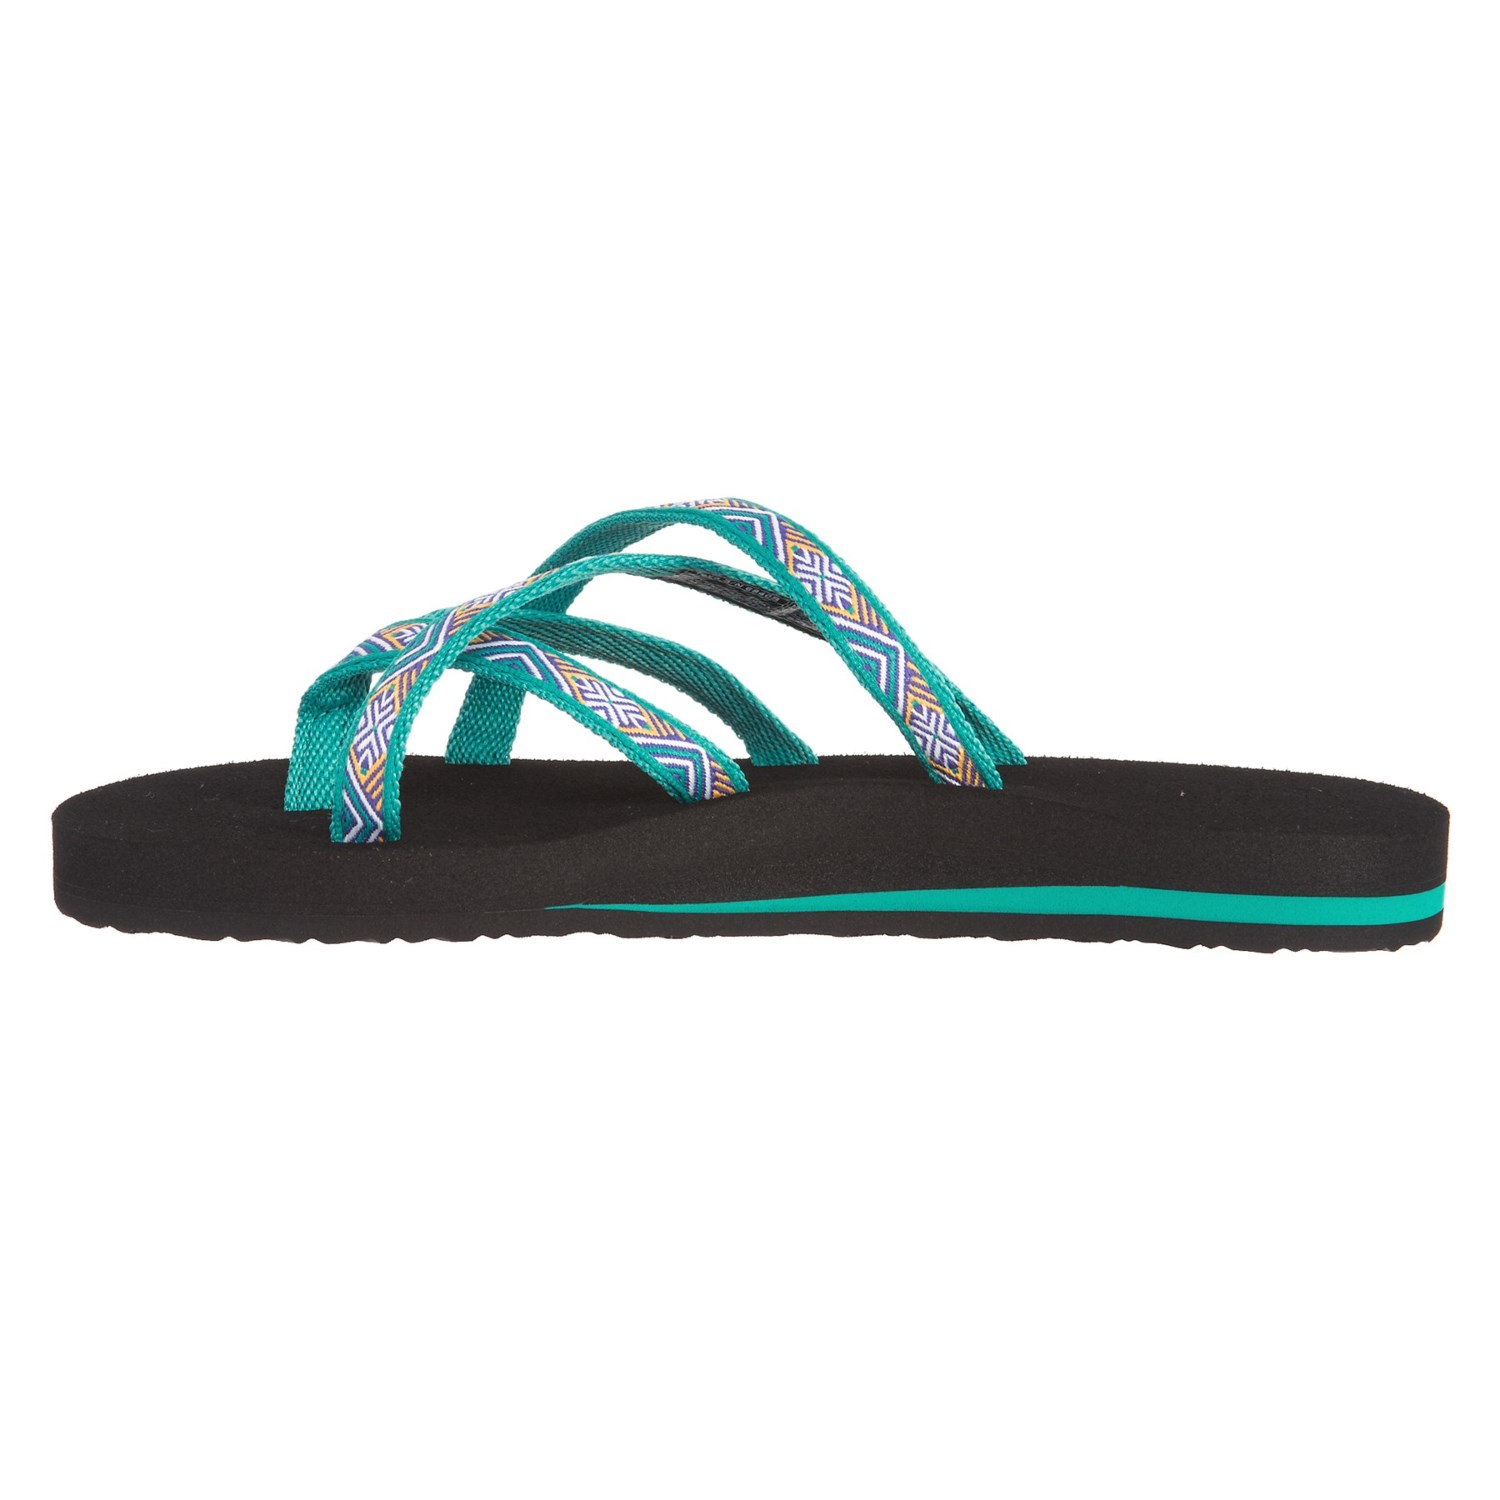 2c99124c6d42d Teva Olowahu Flip-Flops (For Women) - Save 35%